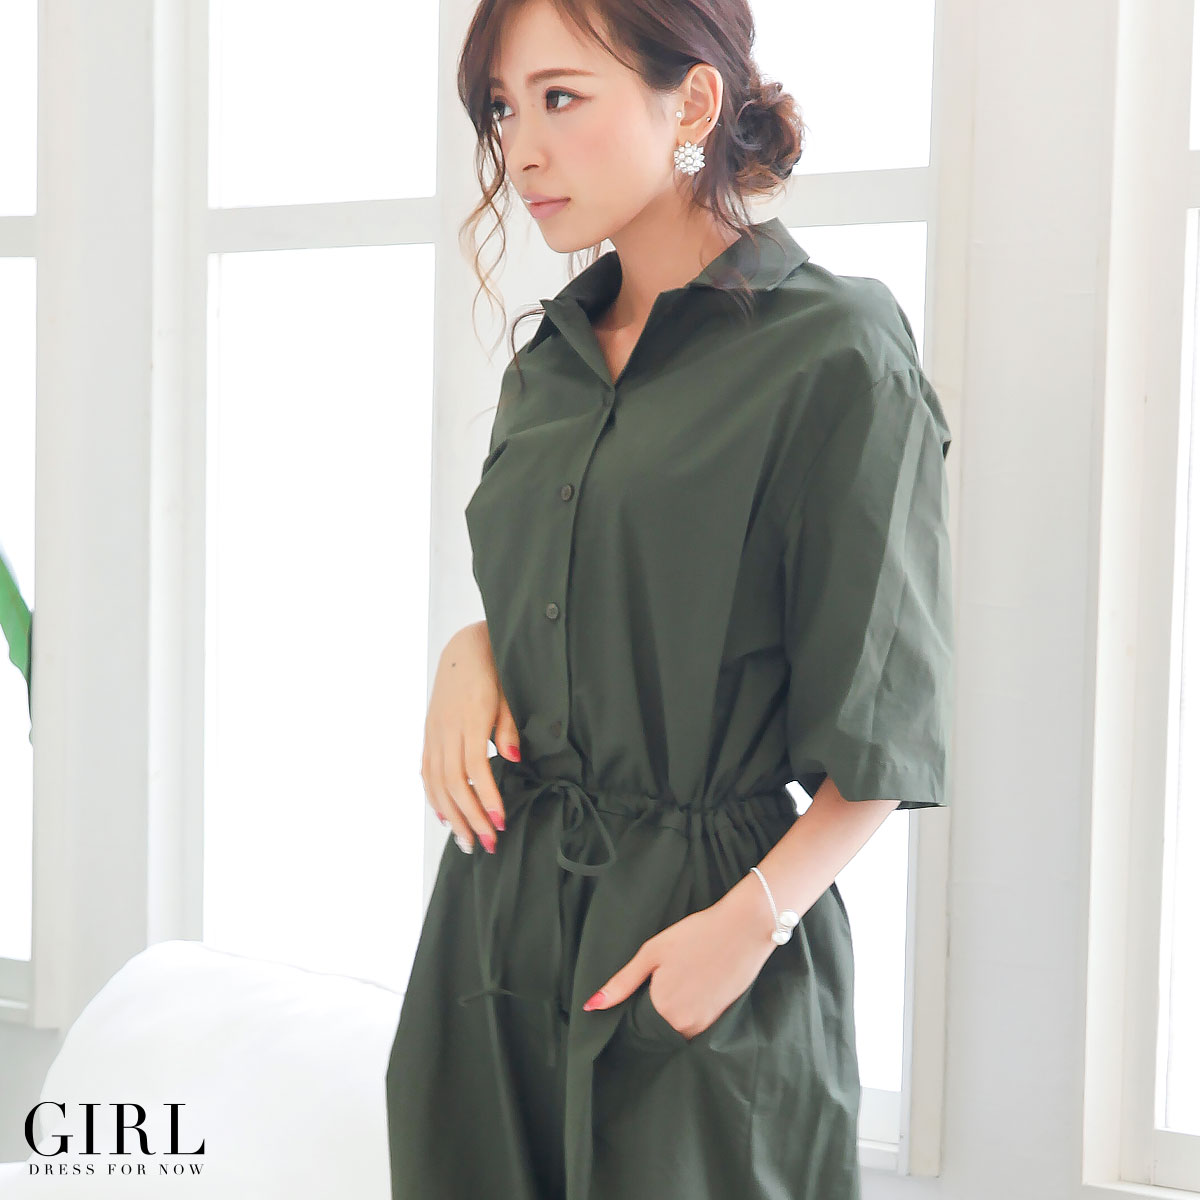 2f4cc22d74553 Dress shop GIRL: Prom dress pants dress all-in-one ladies ' prom dresses  store otonagirl (otonaGIRL) shirt type all-in-one pants dress all-in-one  overalls ...